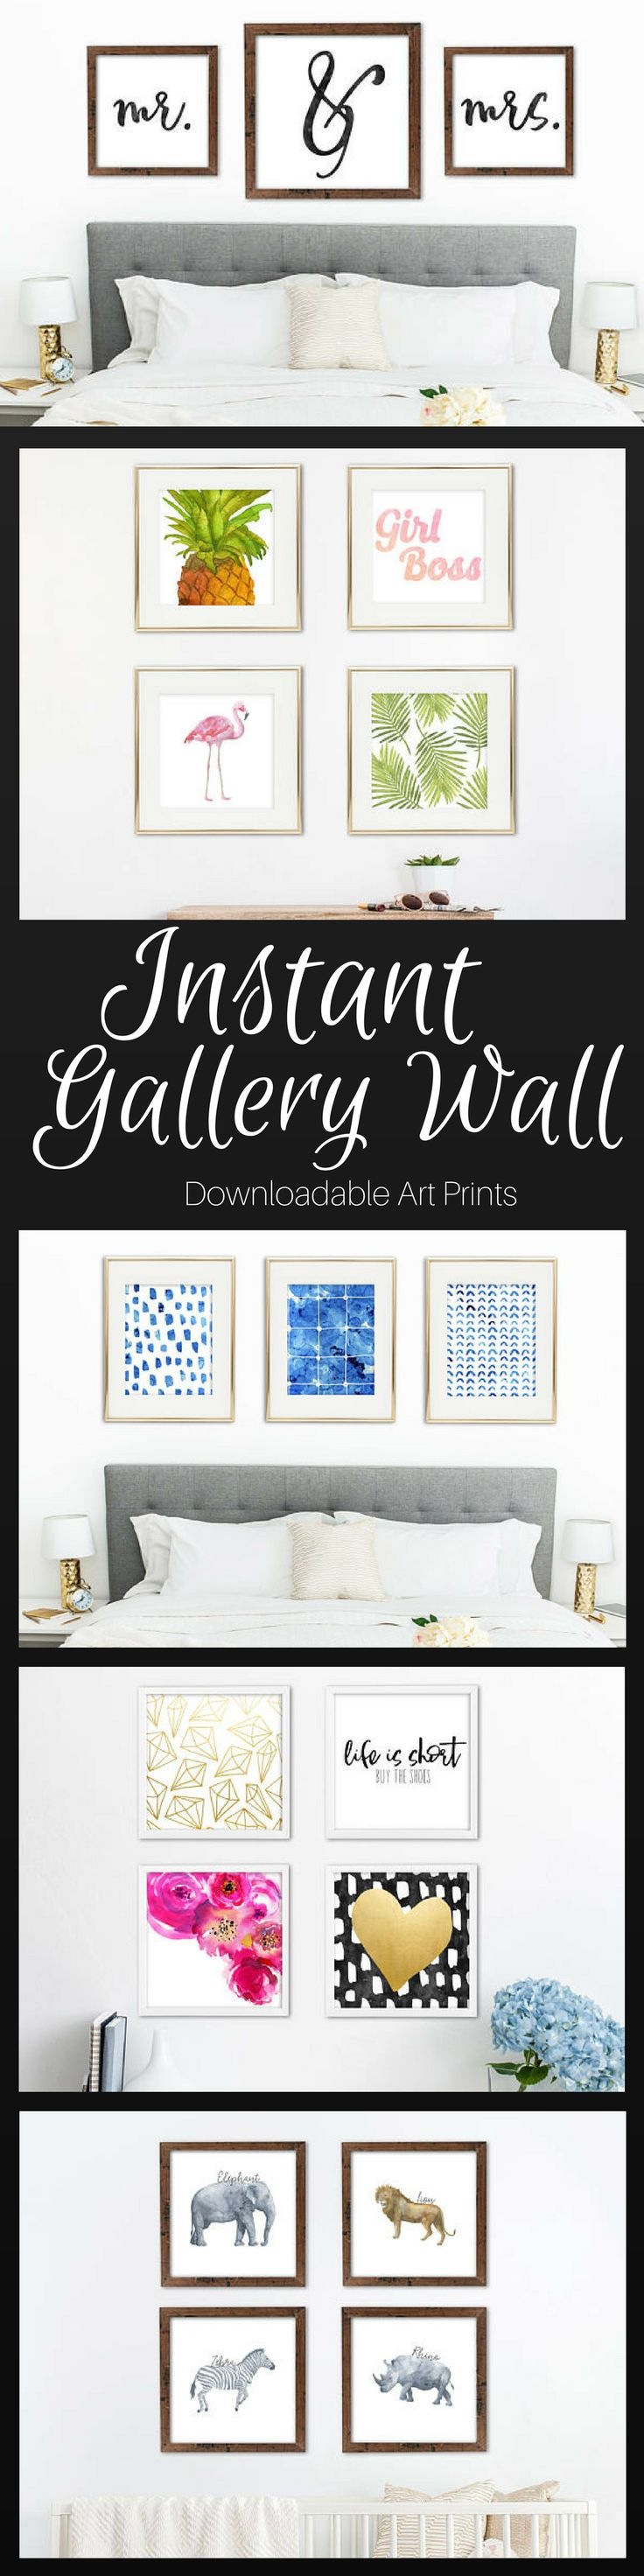 Create a gallery wall in any room in an instant! Mr. & Mrs. for over the bed in Mater Bedroom, Girl boss office prints, nursery prints and more! Instant downloads. #printable #artwork #ad #etsyseller